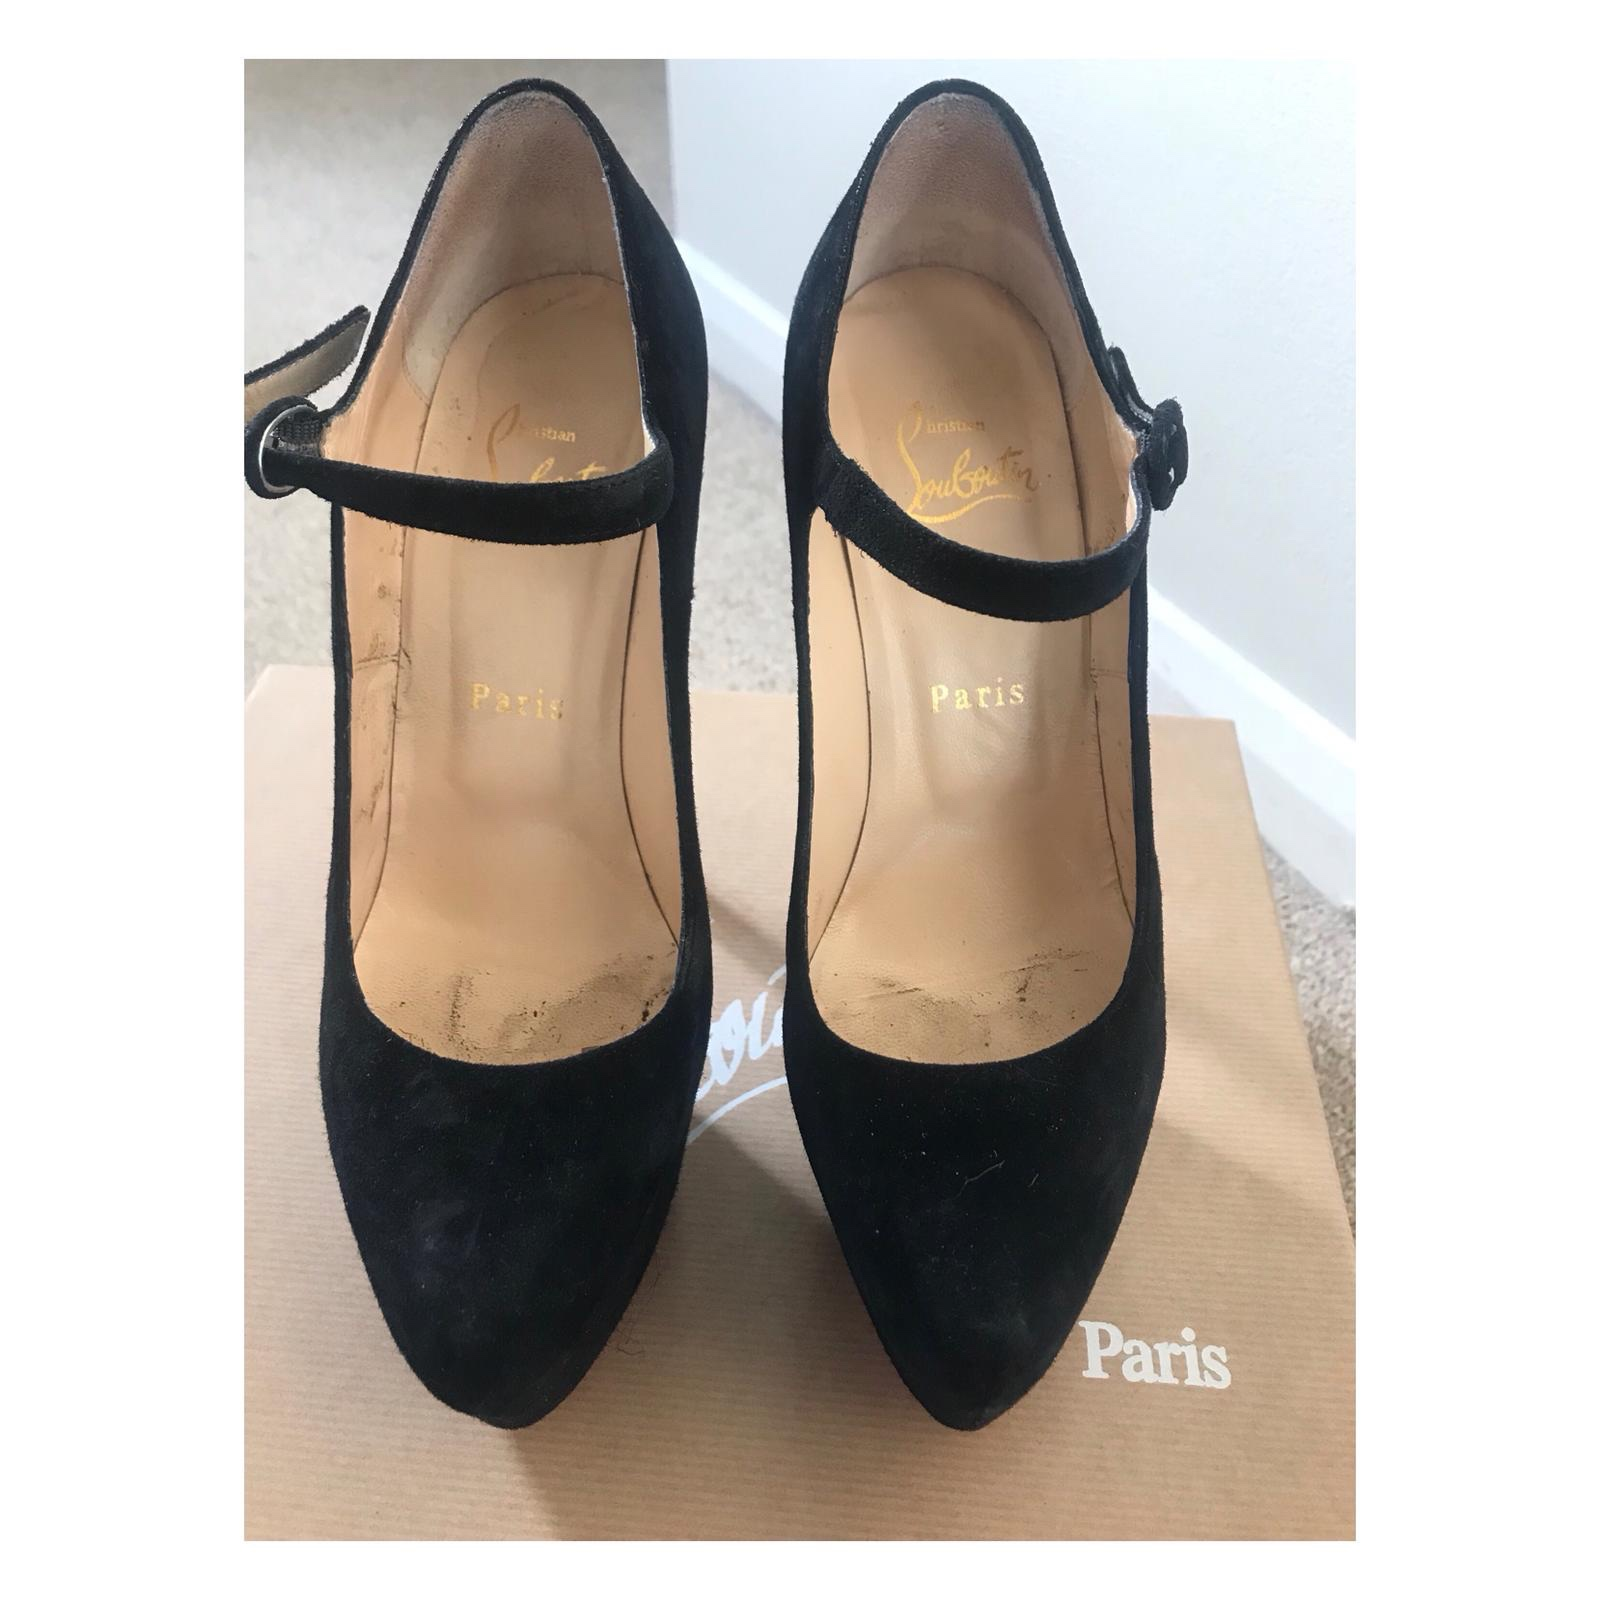 best authentic 42245 9d6c4 Christian Louboutin Lady Daf Mary Jane Heels in size... - Depop